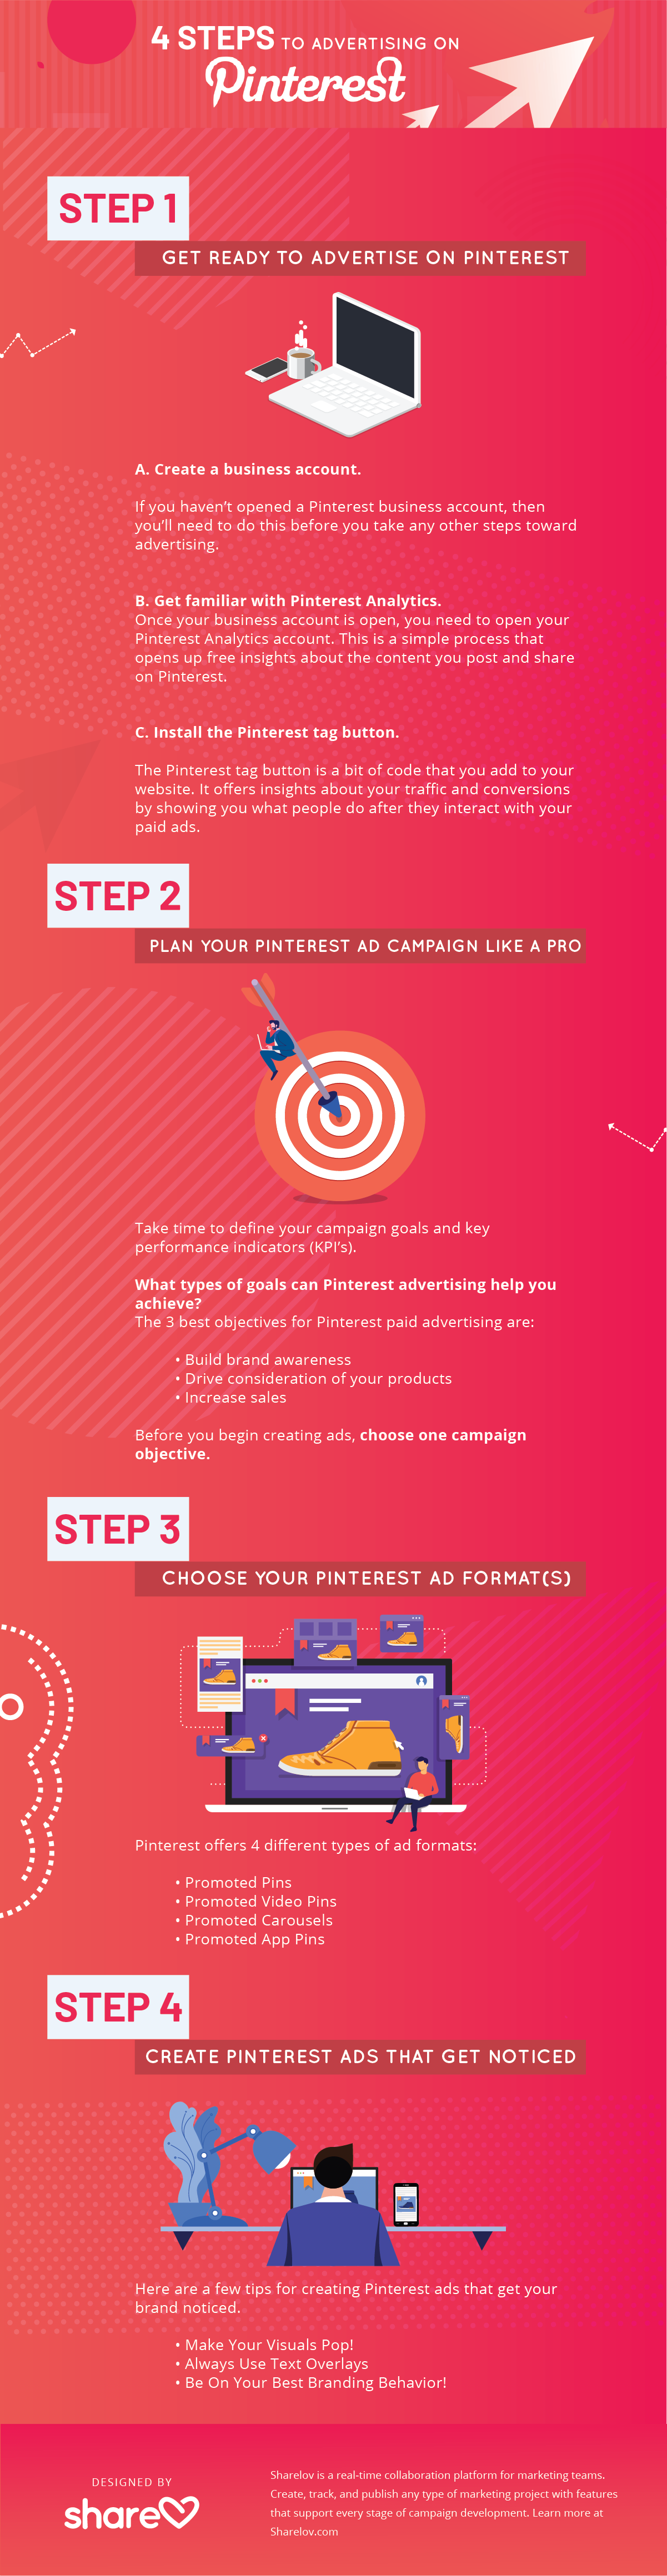 4 Steps to Advertising on Pinterest